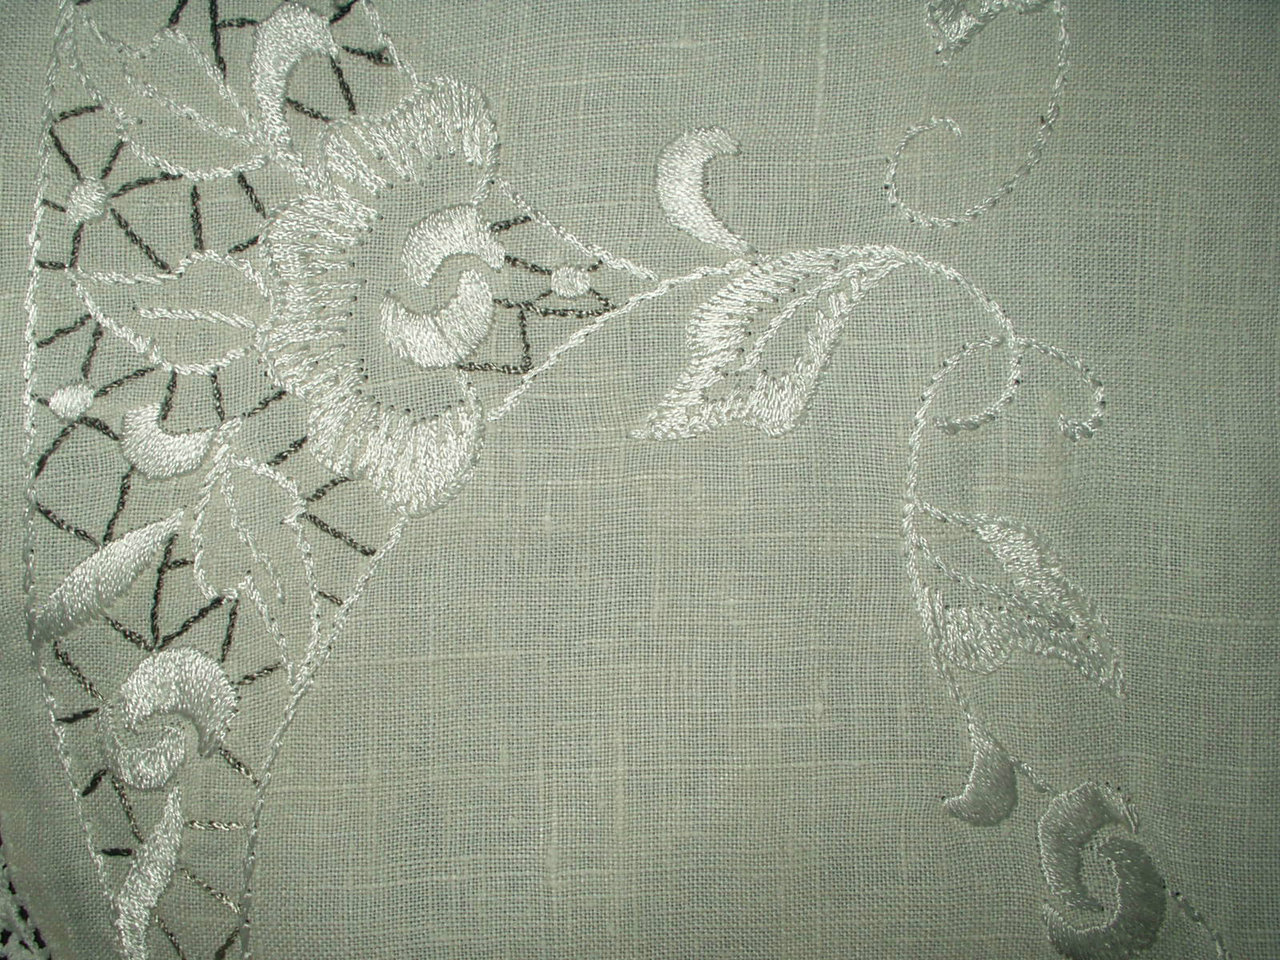 ... Vintage 1930s Gray White Embroidery 30 Inch Round Linen Center Piece  Doily Tablecloth